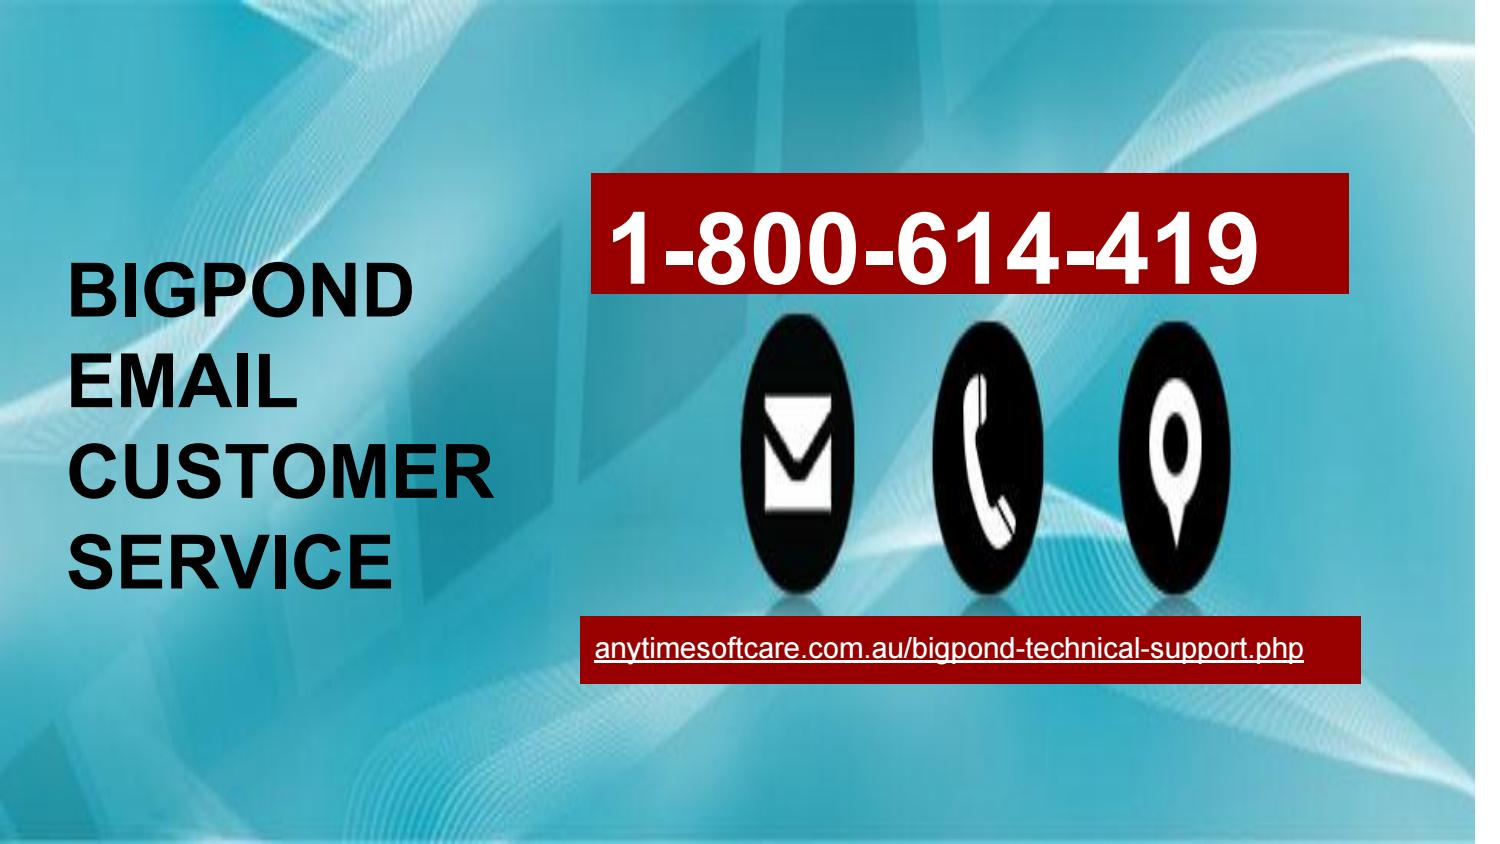 Telstra Email Support 1-800-614-419 To Back Up Mails